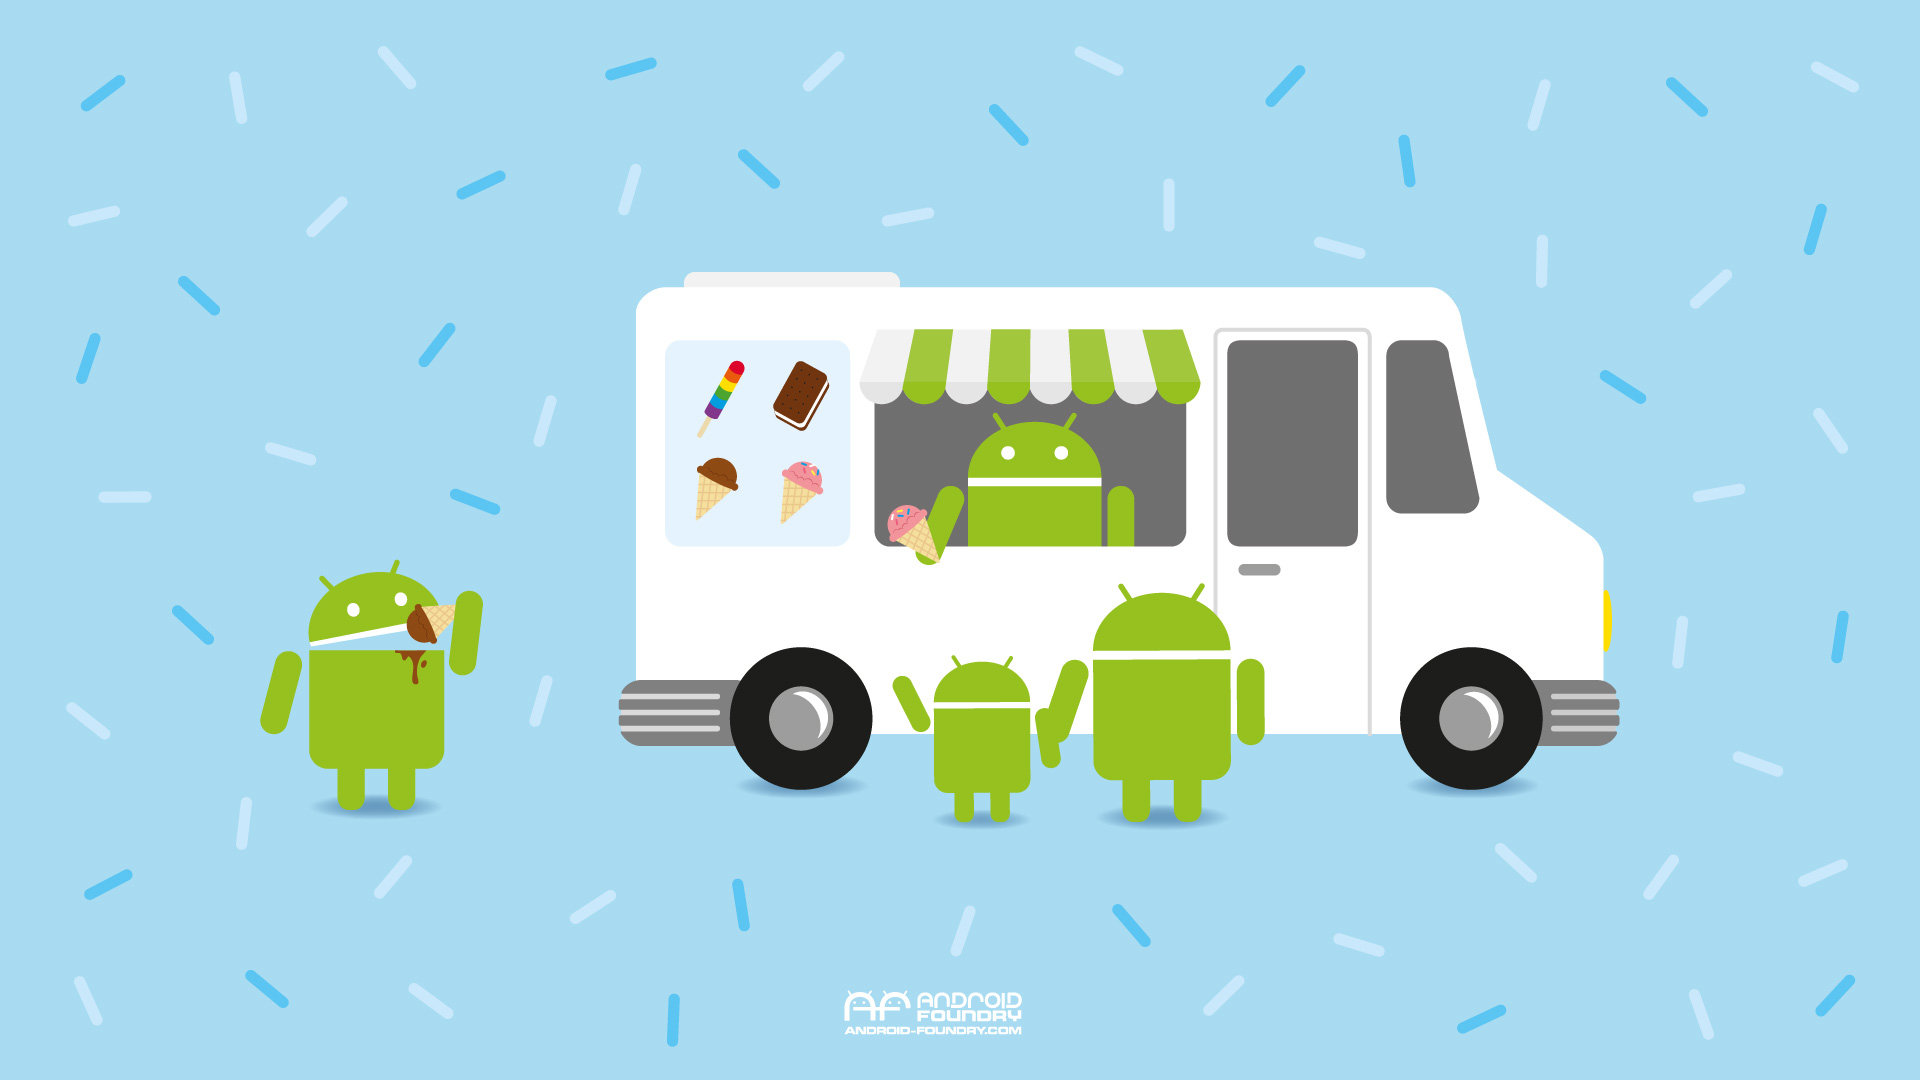 Android Wallpaper Ice Cream